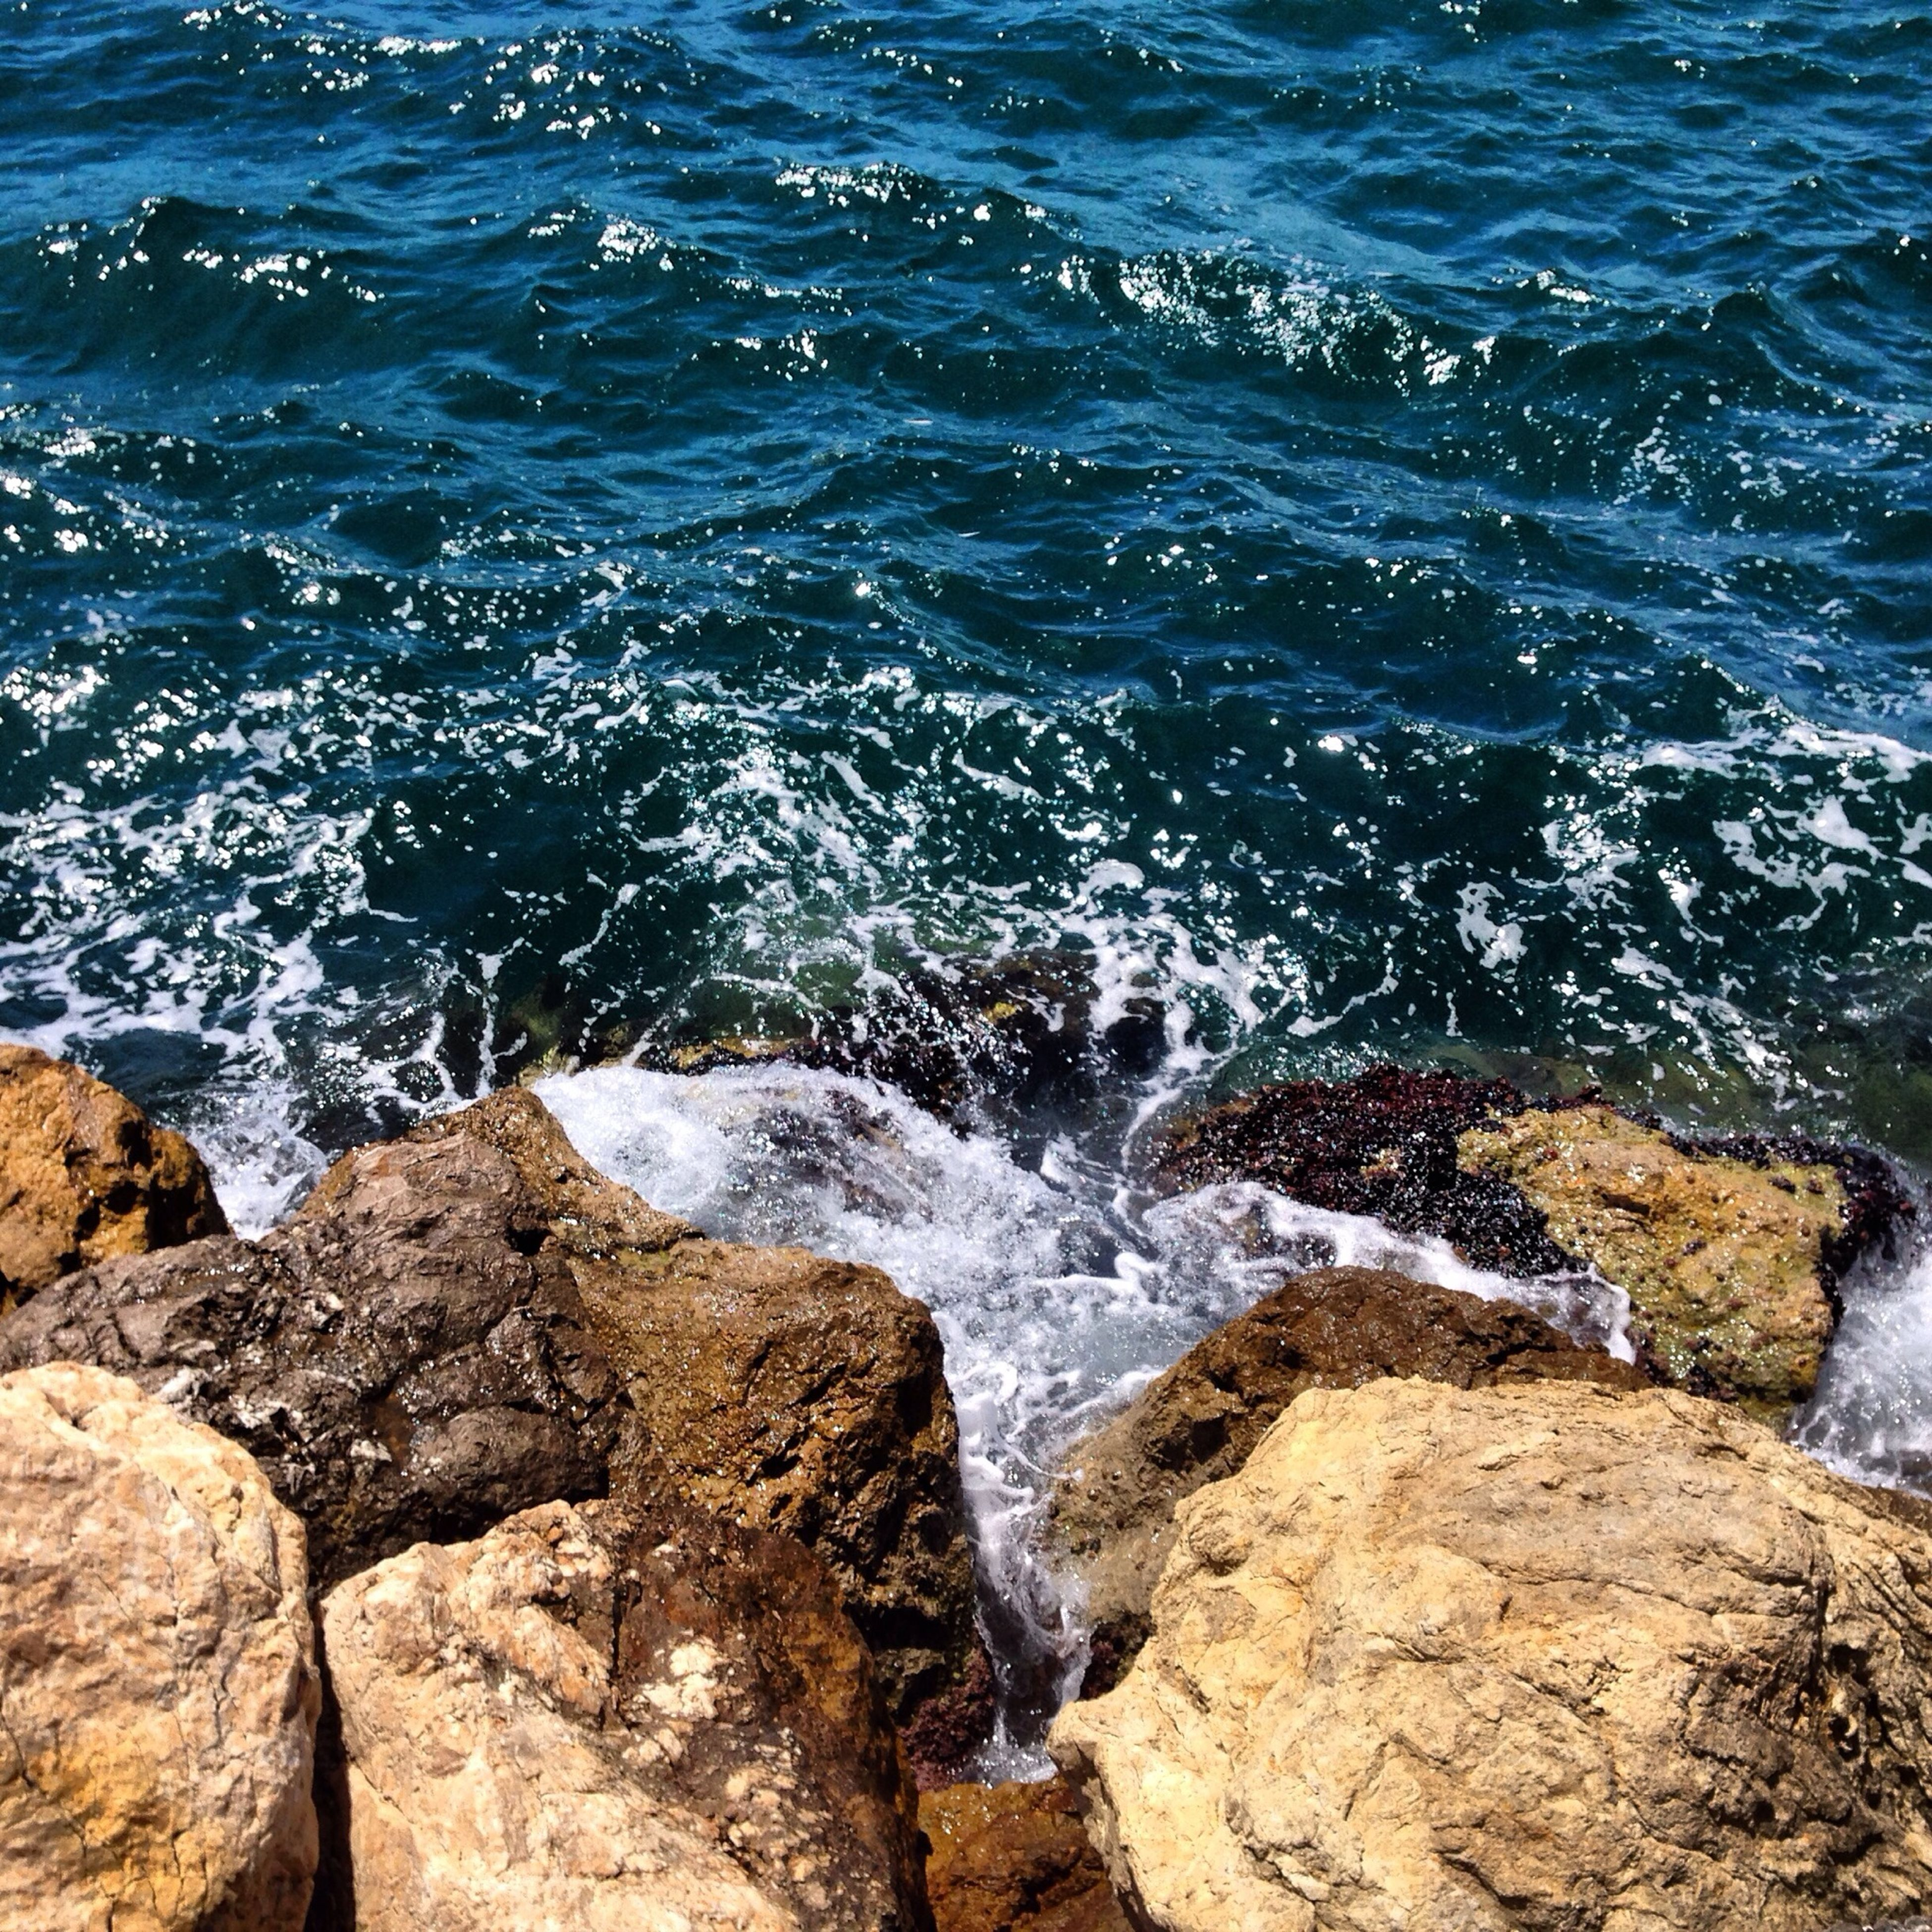 water, surf, sea, wave, motion, splashing, rock - object, beauty in nature, nature, scenics, high angle view, power in nature, rock formation, rock, shore, day, idyllic, outdoors, flowing water, no people